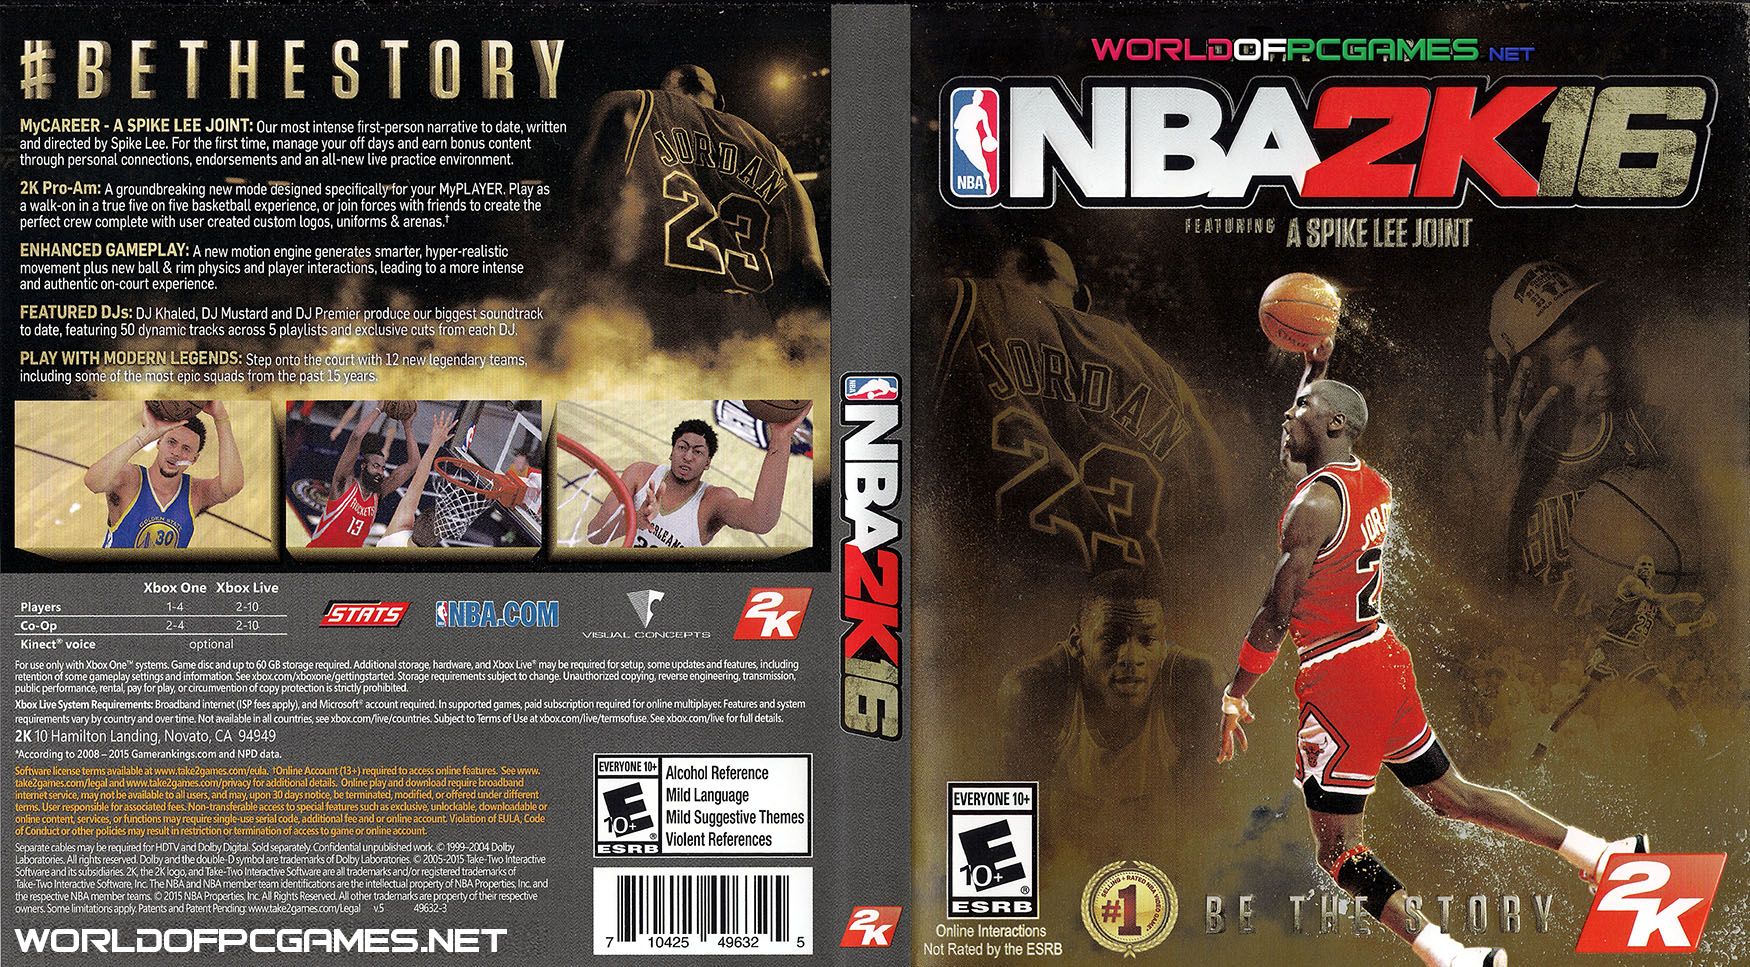 Nba 2k16 Free Download Pc Game Full Version Iso Compressed